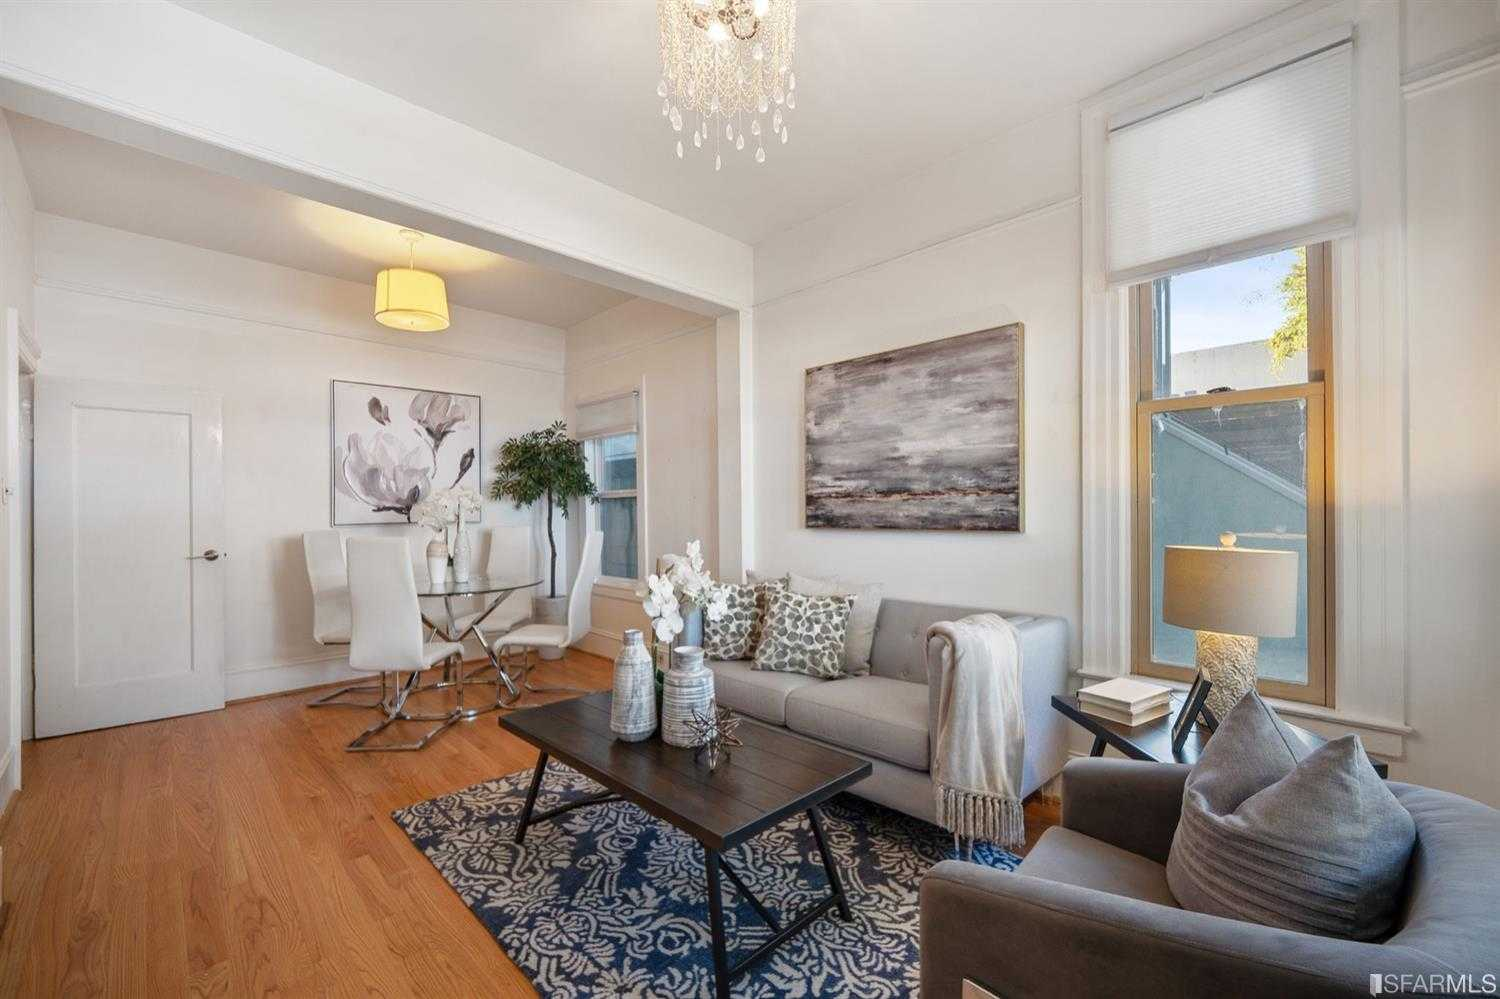 $869,000 - 2Br/2Ba -  for Sale in San Francisco